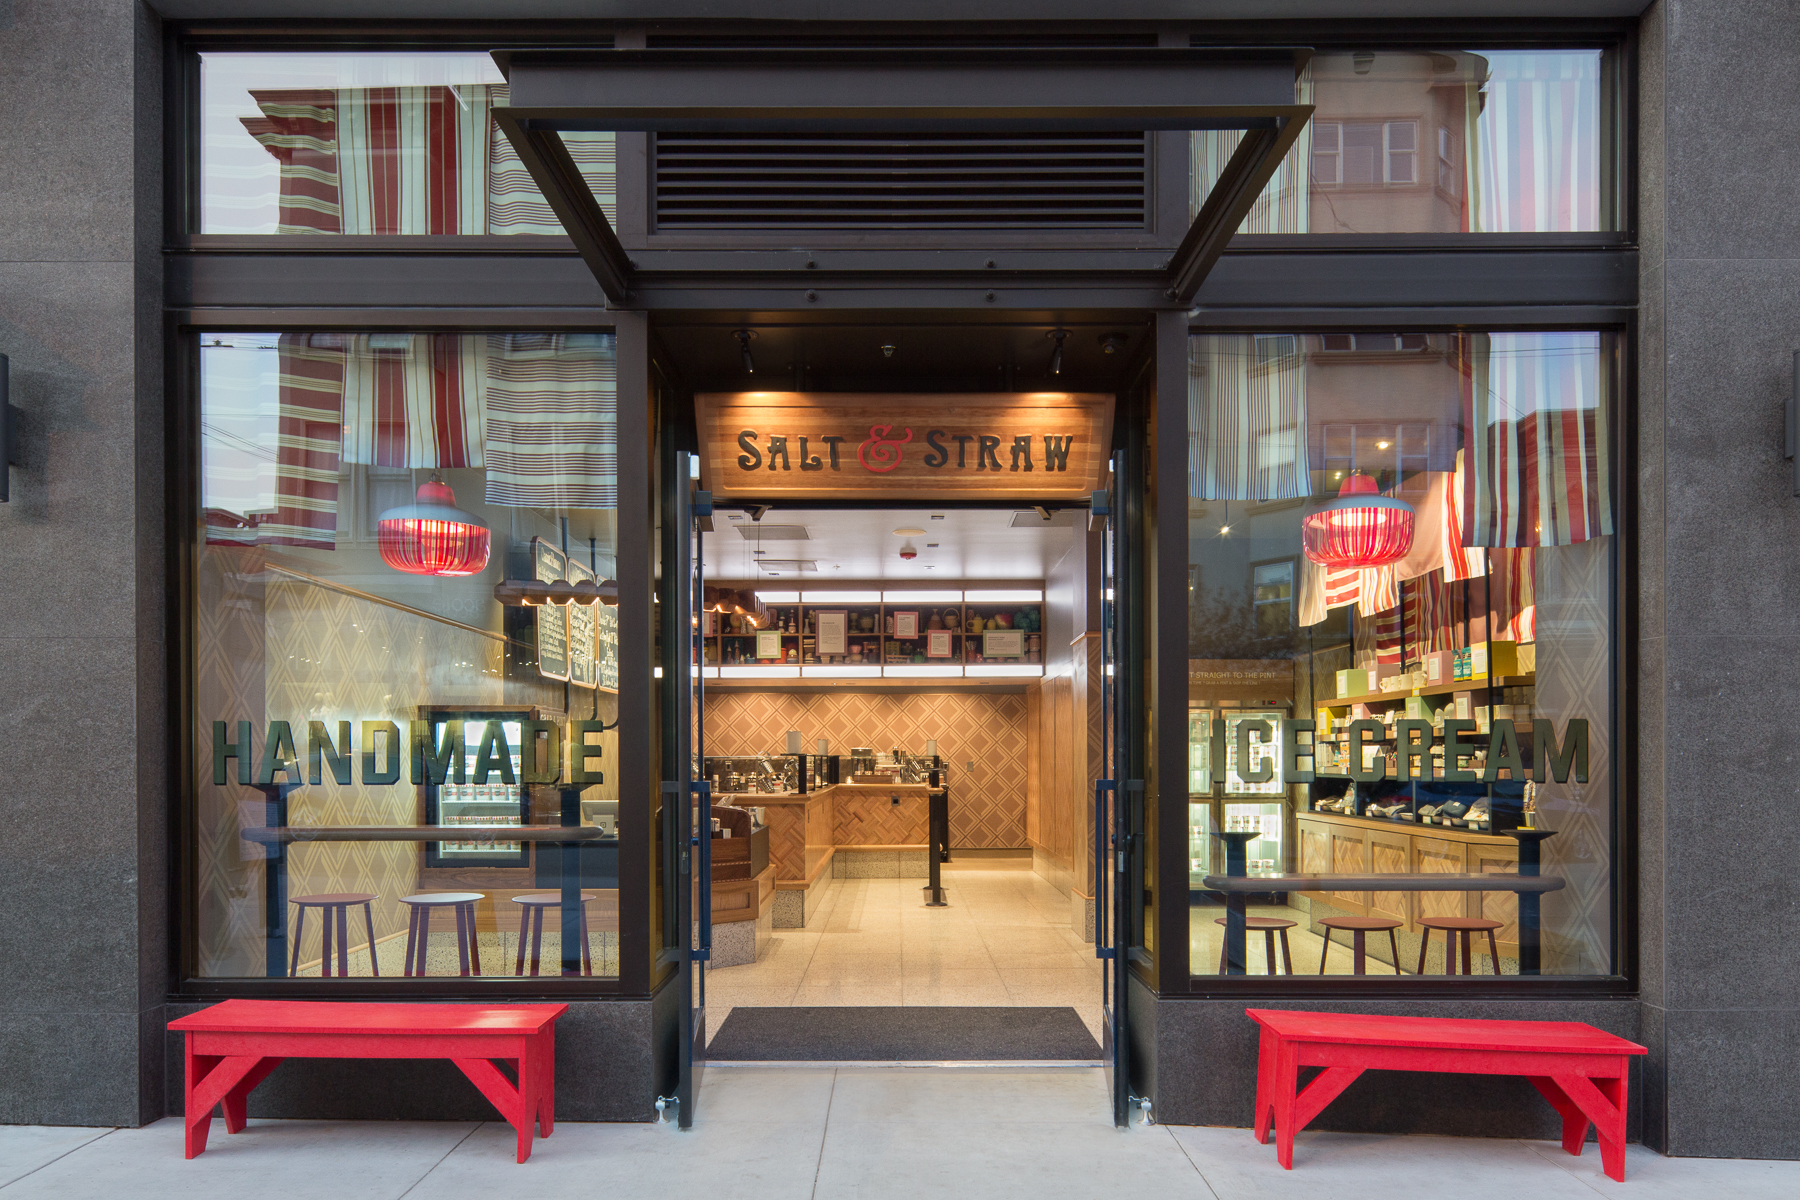 1710-Salt+Straw-Doors Open.jpg